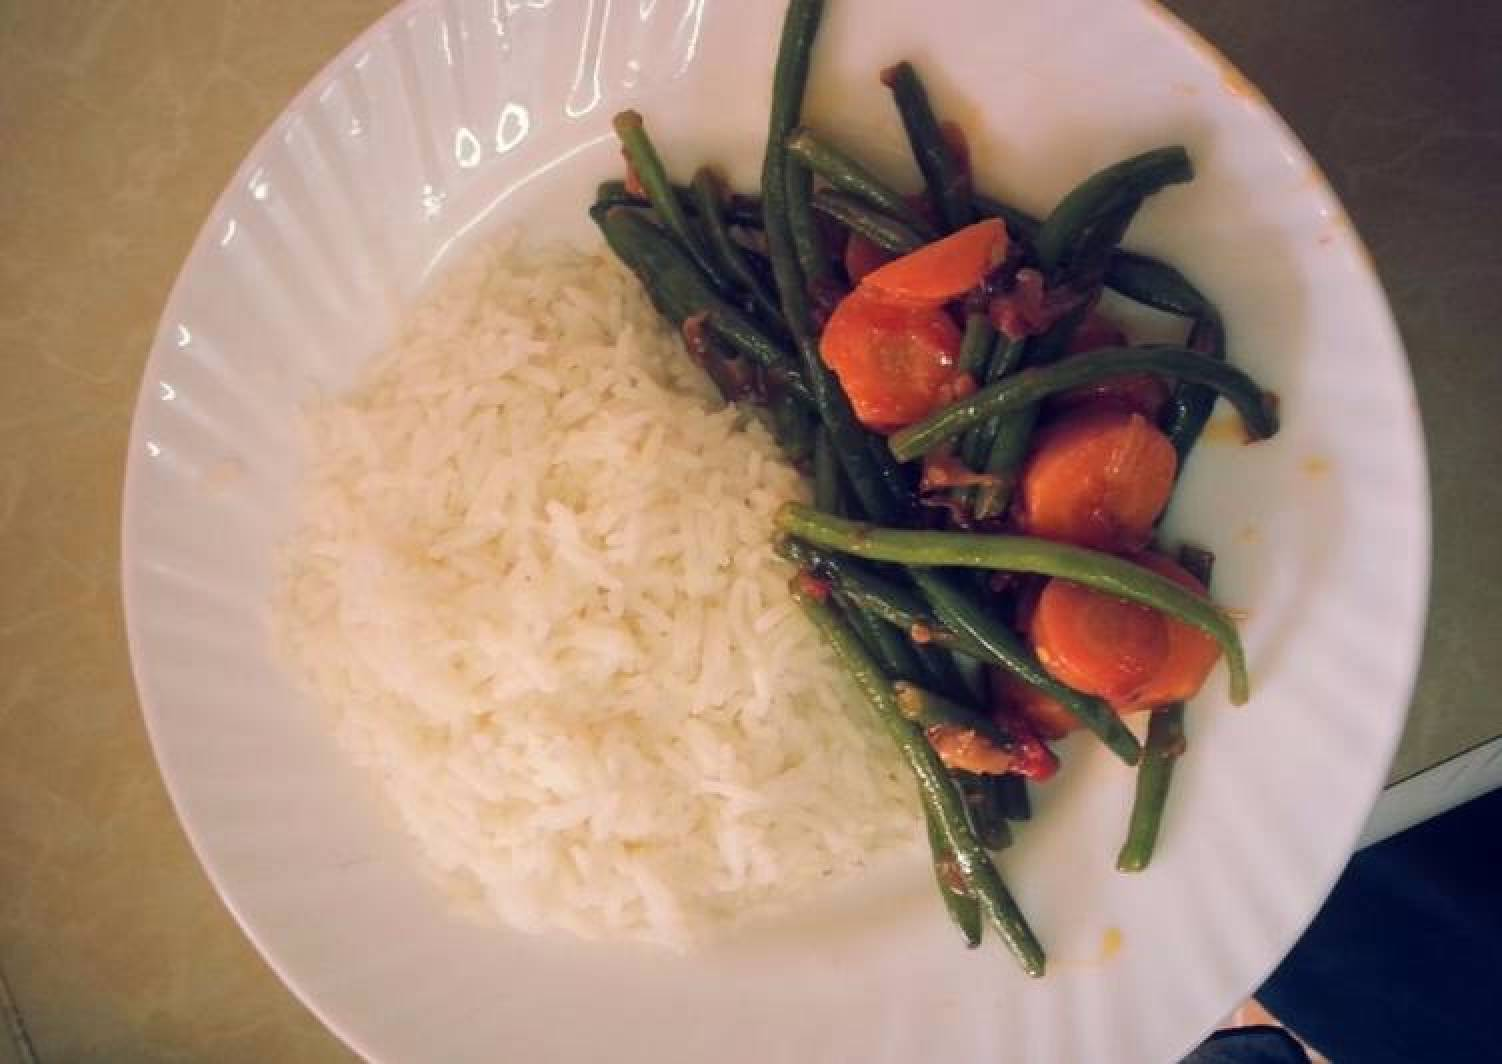 Rice and French beans